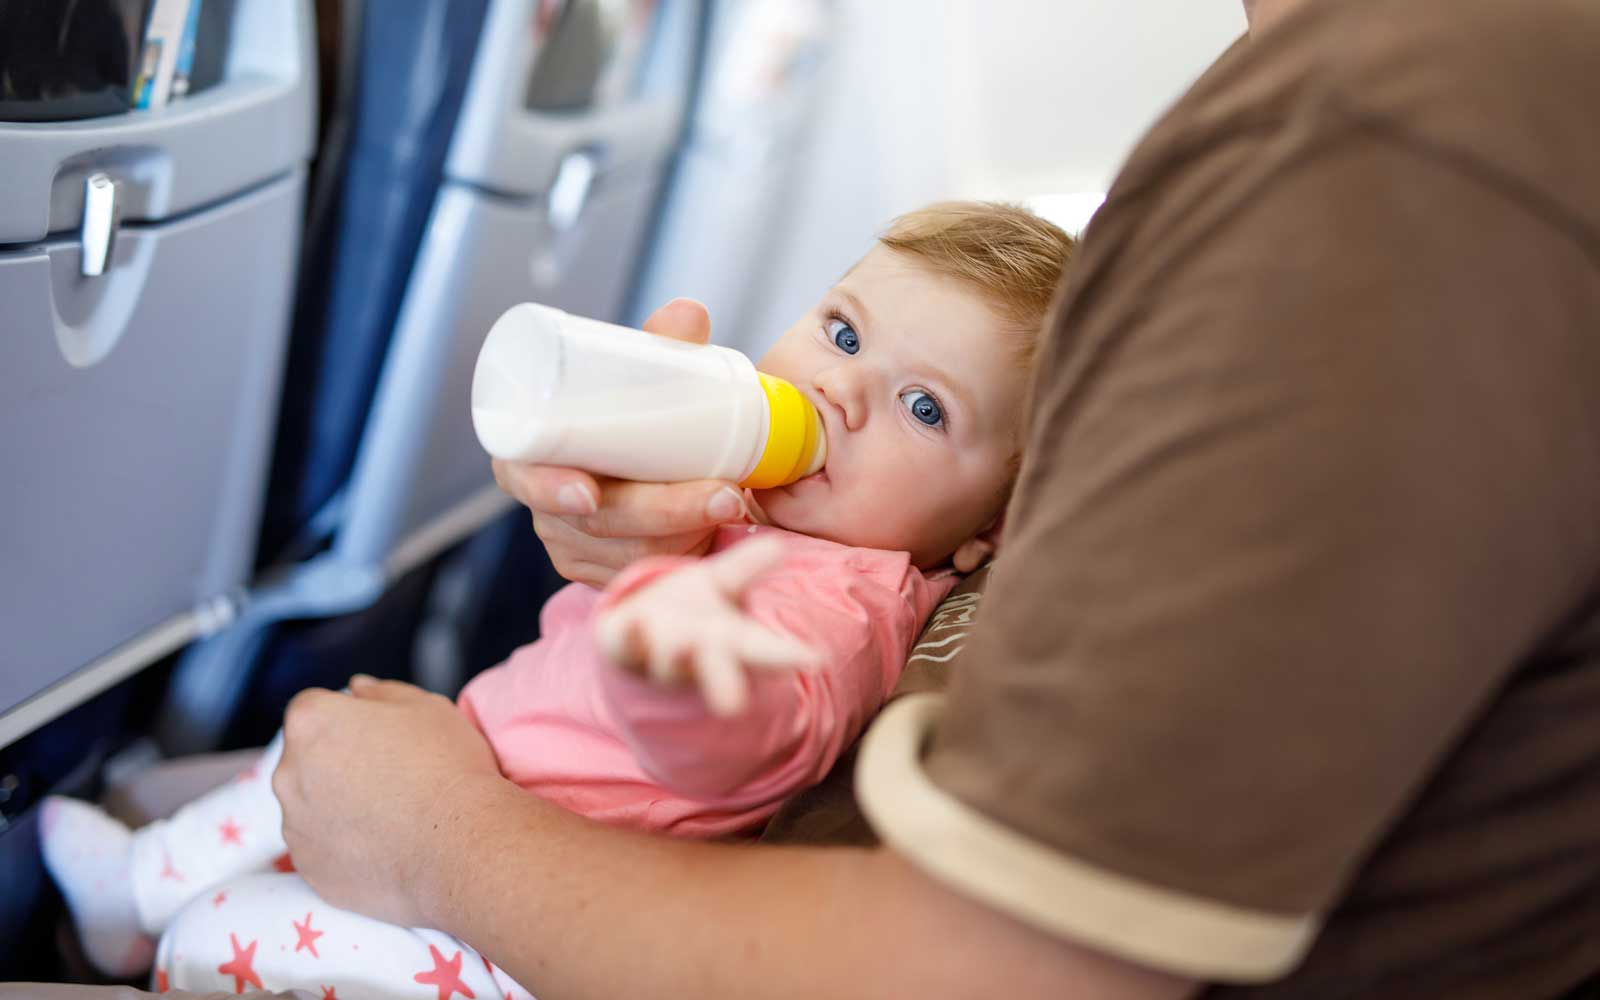 Babies on Airplanes